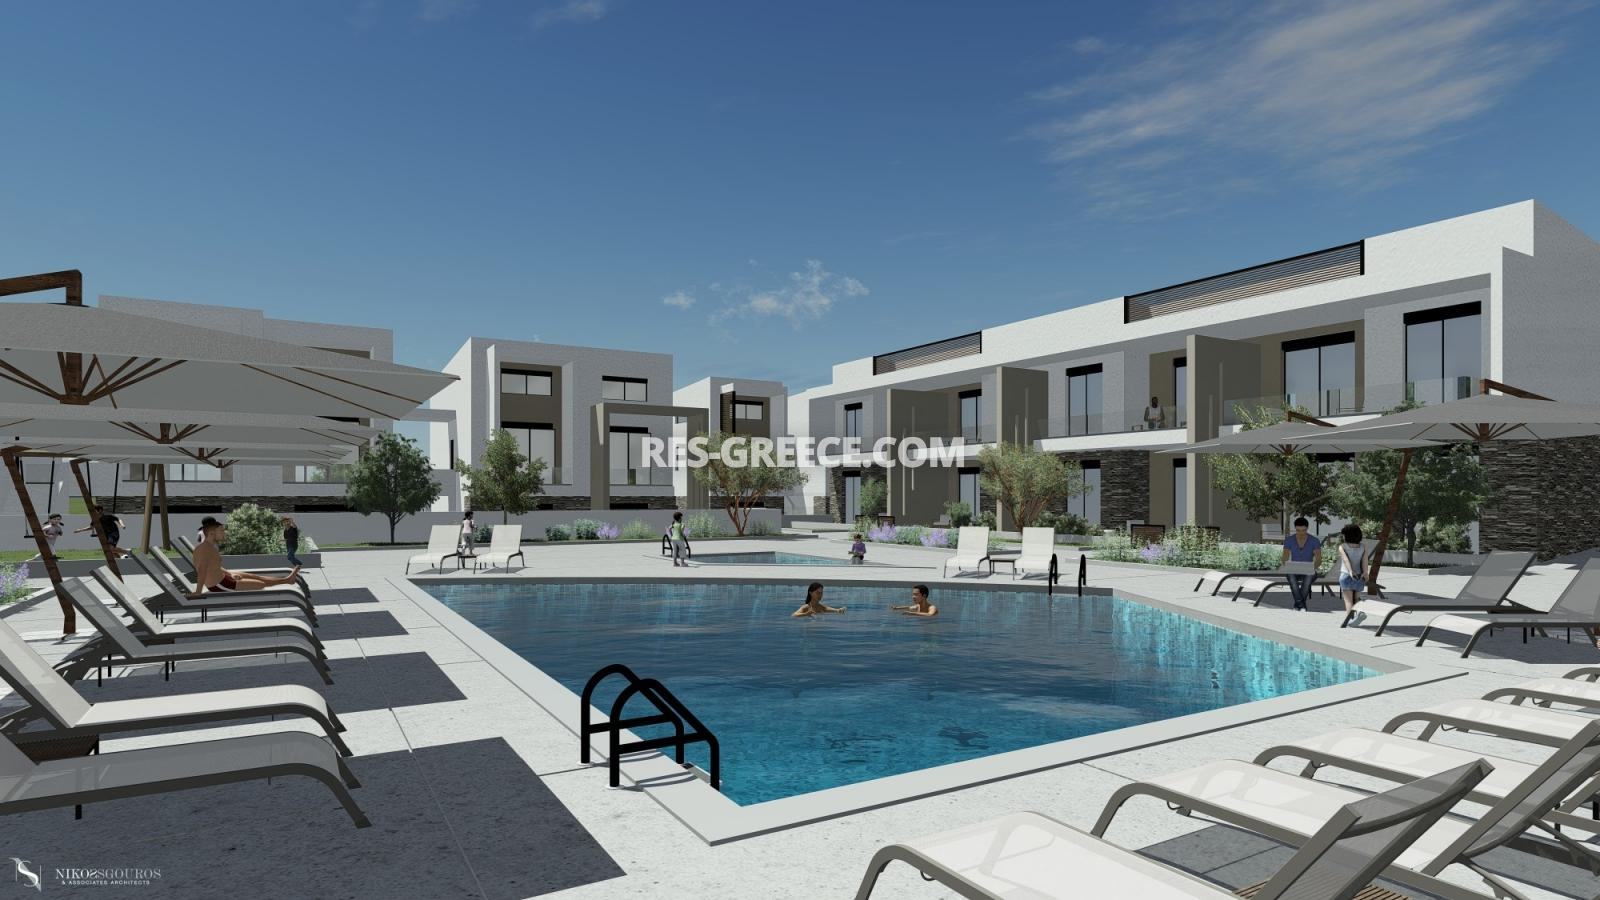 Anasa apartments, Halkidiki-Sithonia, Greece - apartments in a new complex with pool - Photo 3